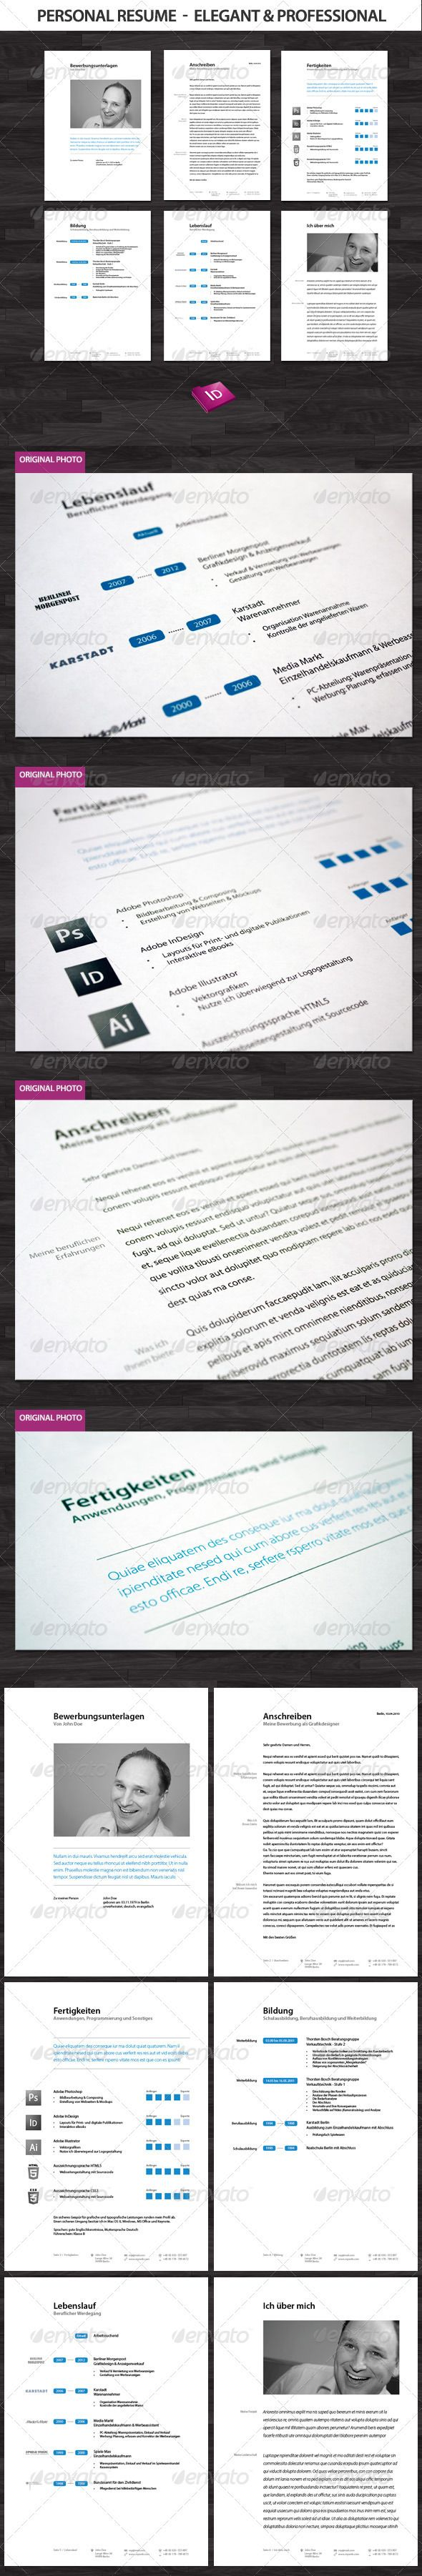 professional and elegant resume set